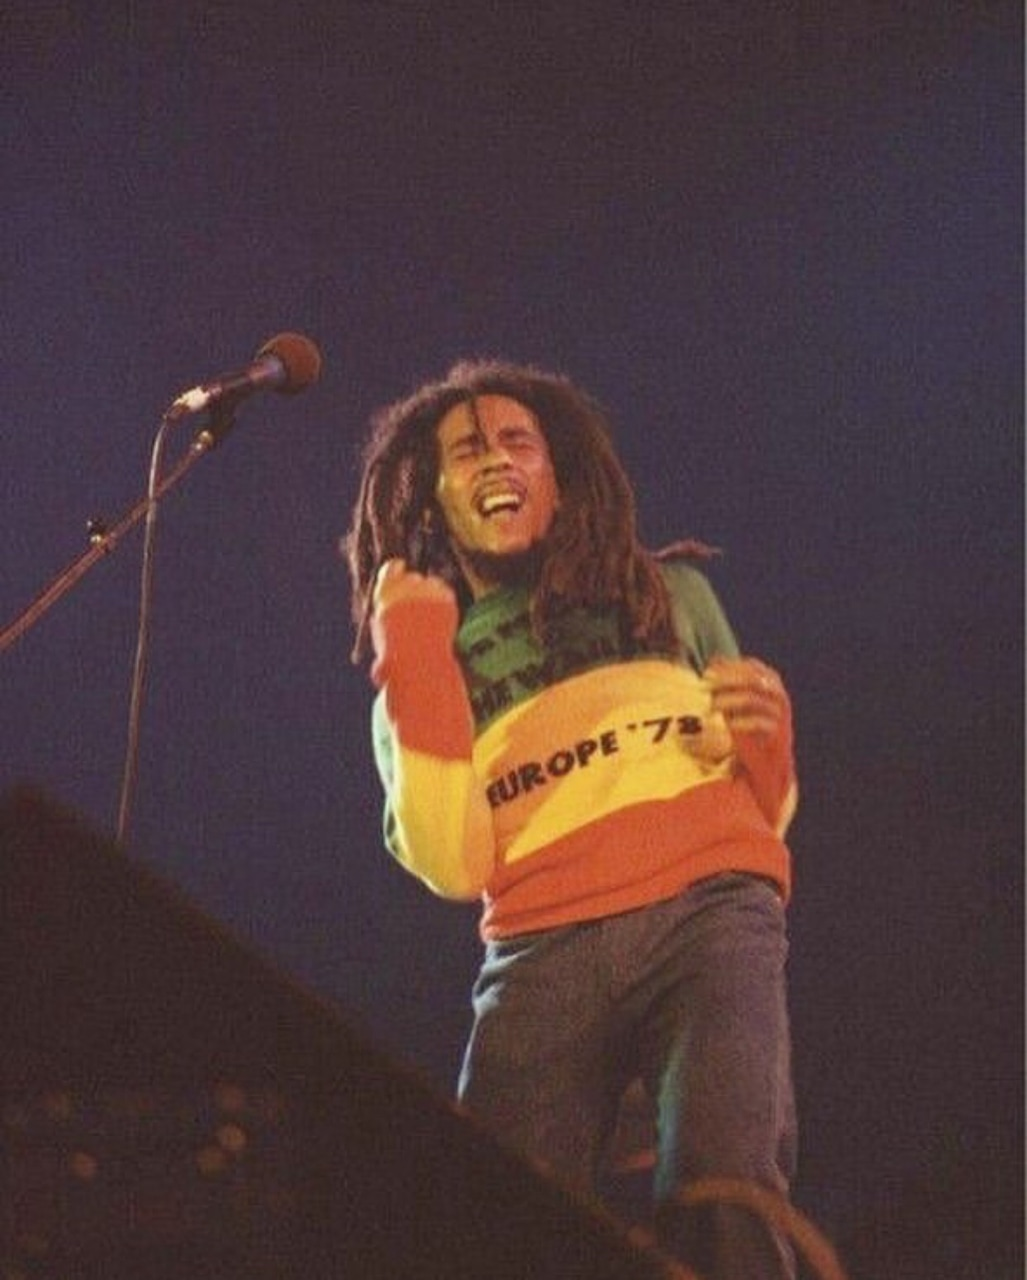 bob marley, reggae, music and aesthetic